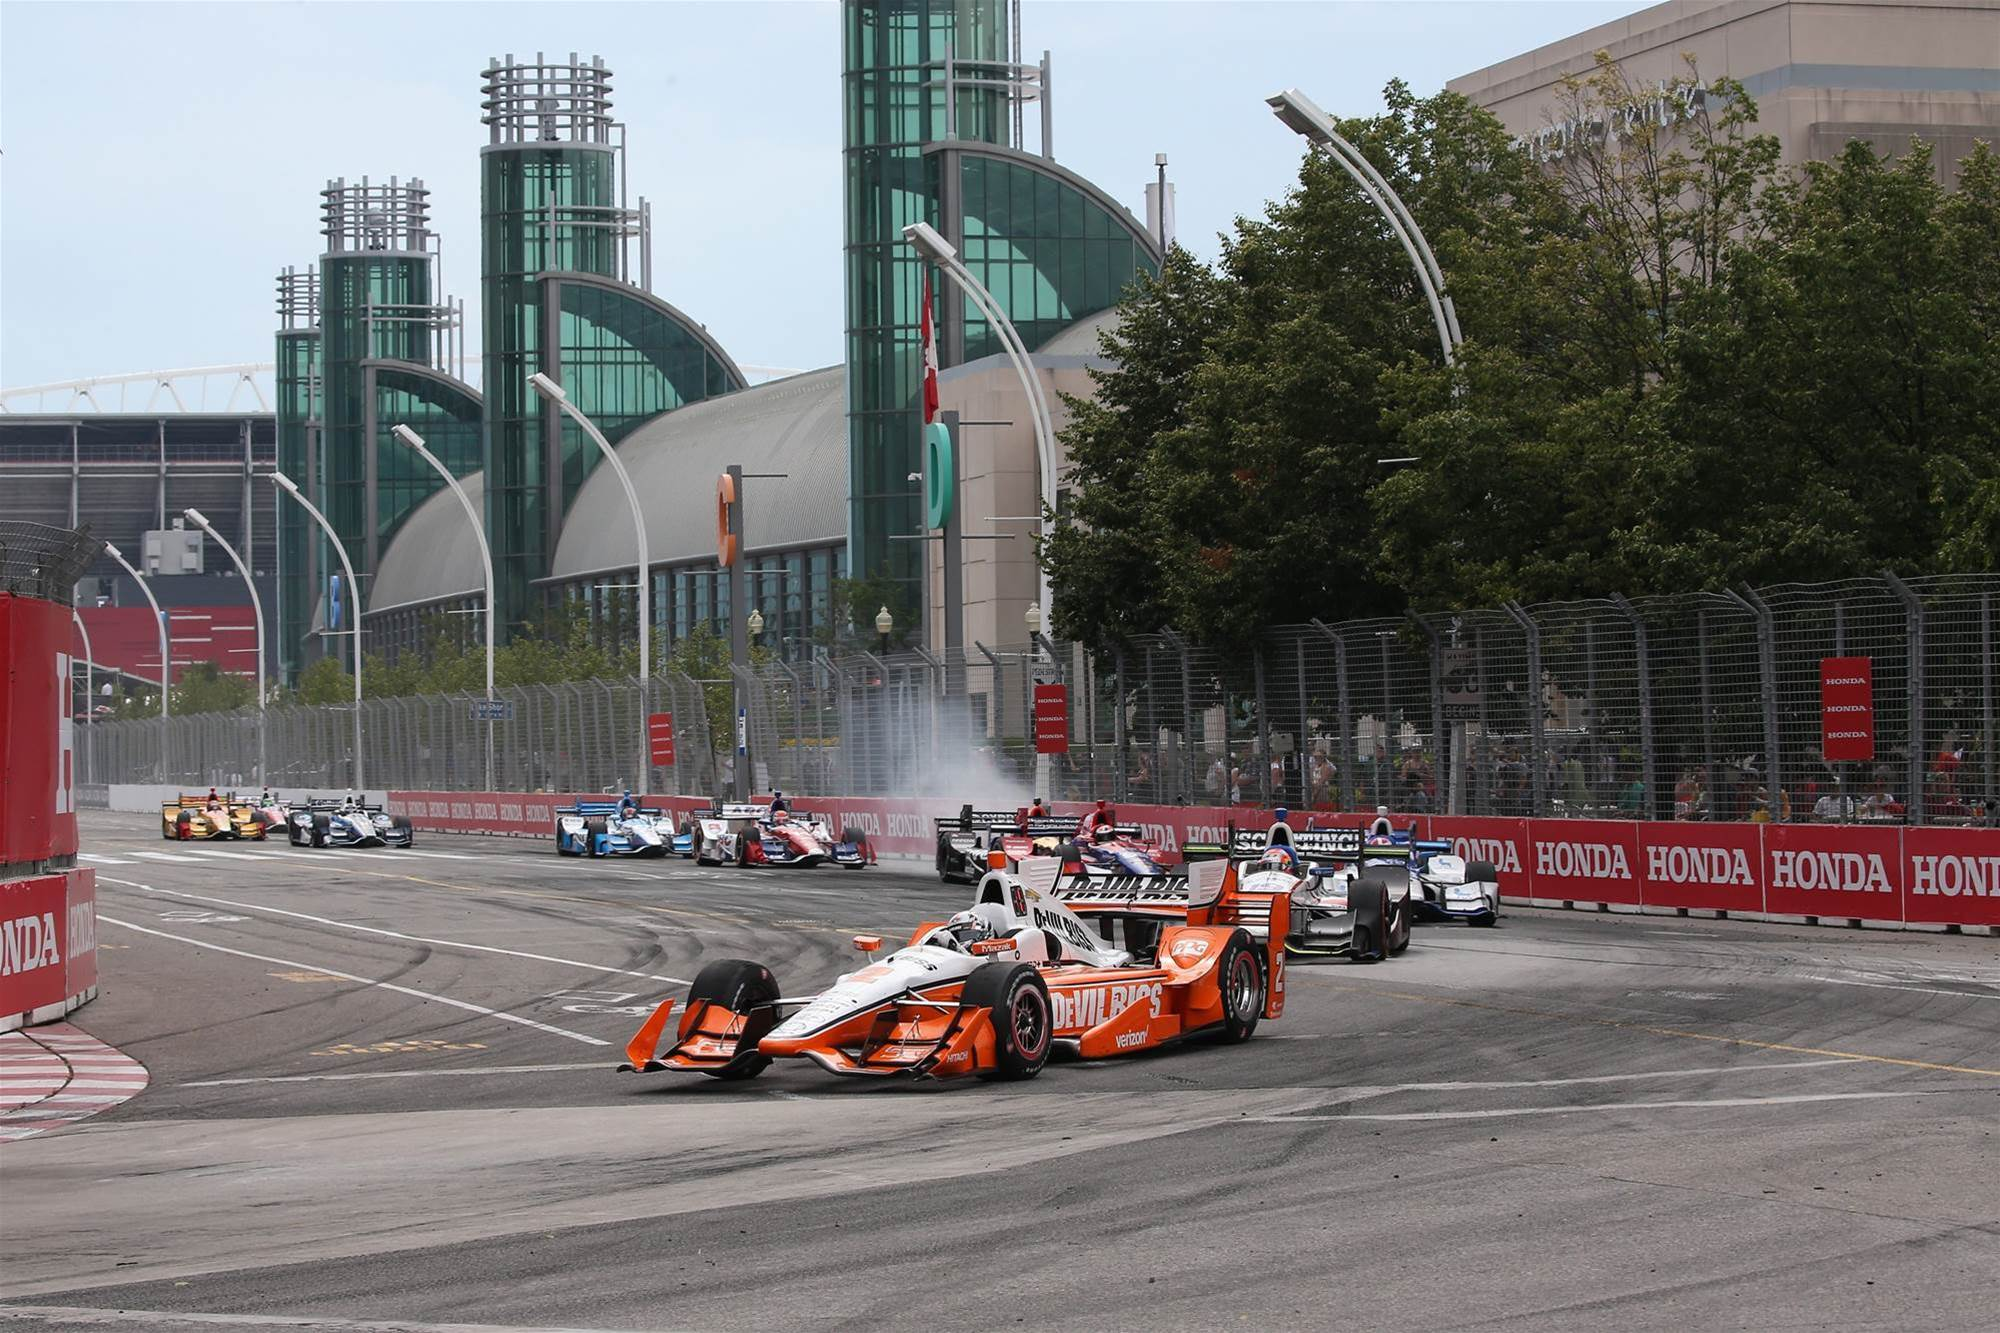 Pic Gallery: Toronto Indycars